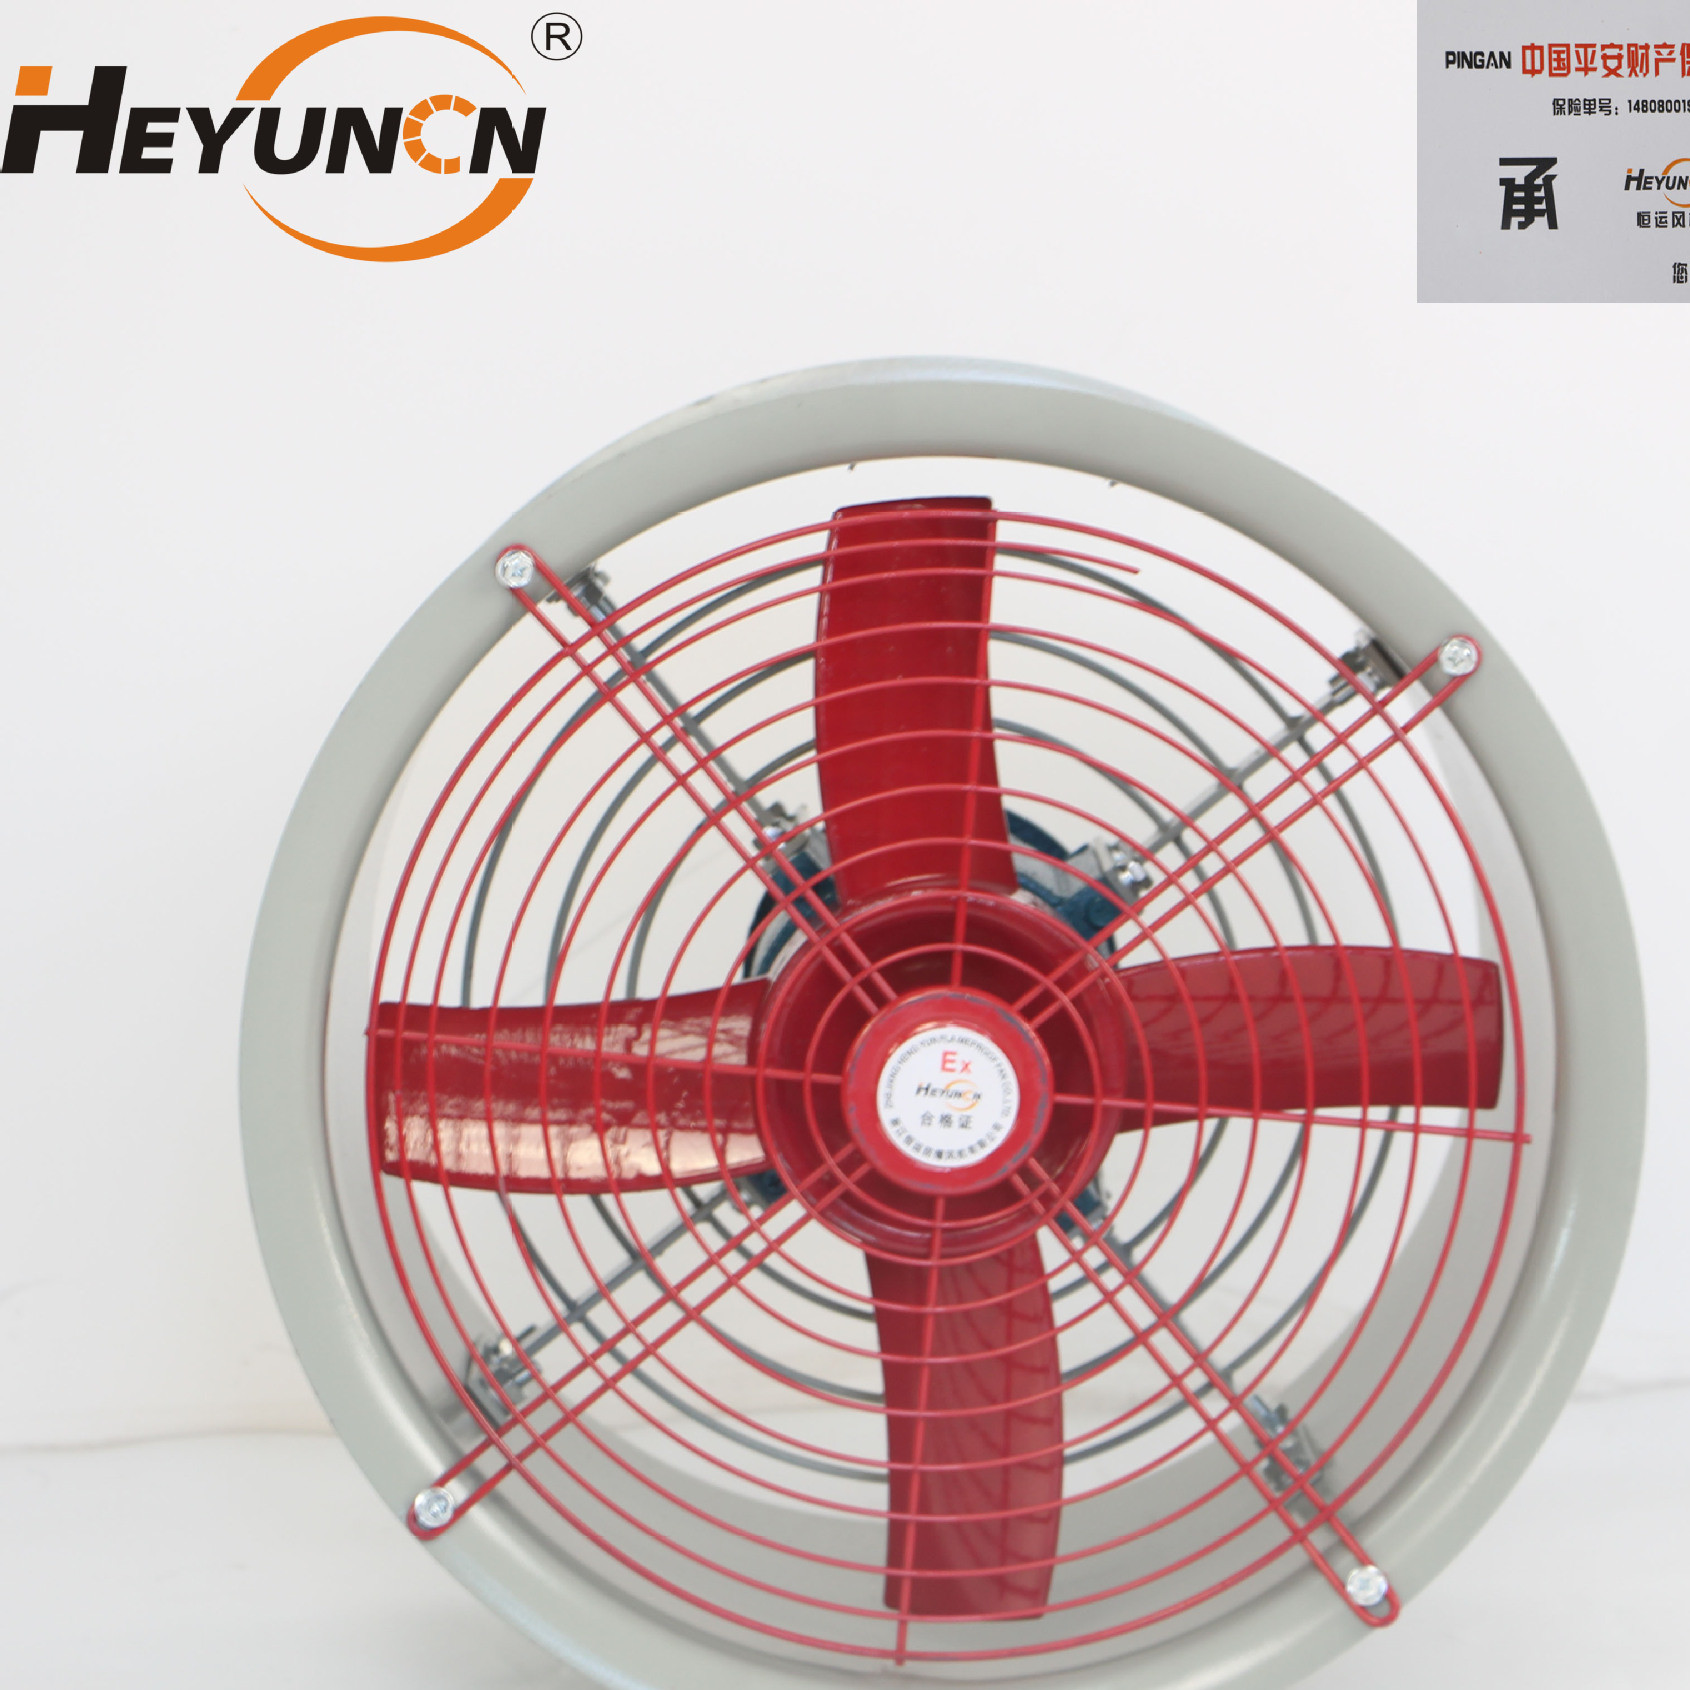 Bt35-11-2.8 explosion-proof axial flow fan can be equipped with rainproof louver ventilation and exhaust equipment